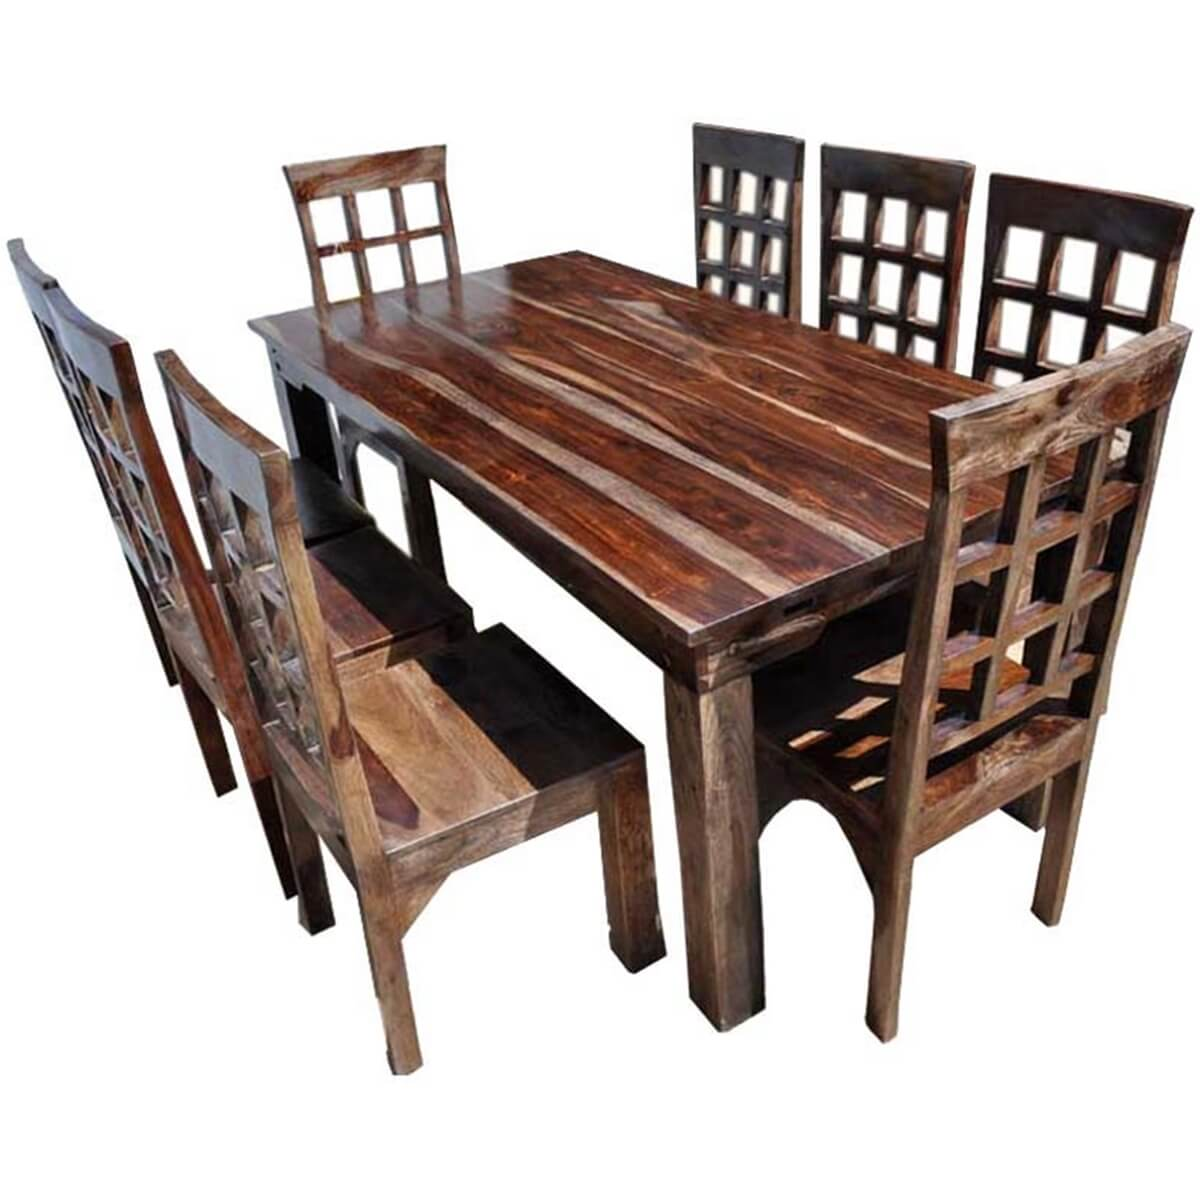 portland-rustic-furniture-extendable-dining-room-table-chair-  sc 1 st  Sierra Living Concepts & Rustic Dining Table and Chair Sets | Sierra Living Concepts